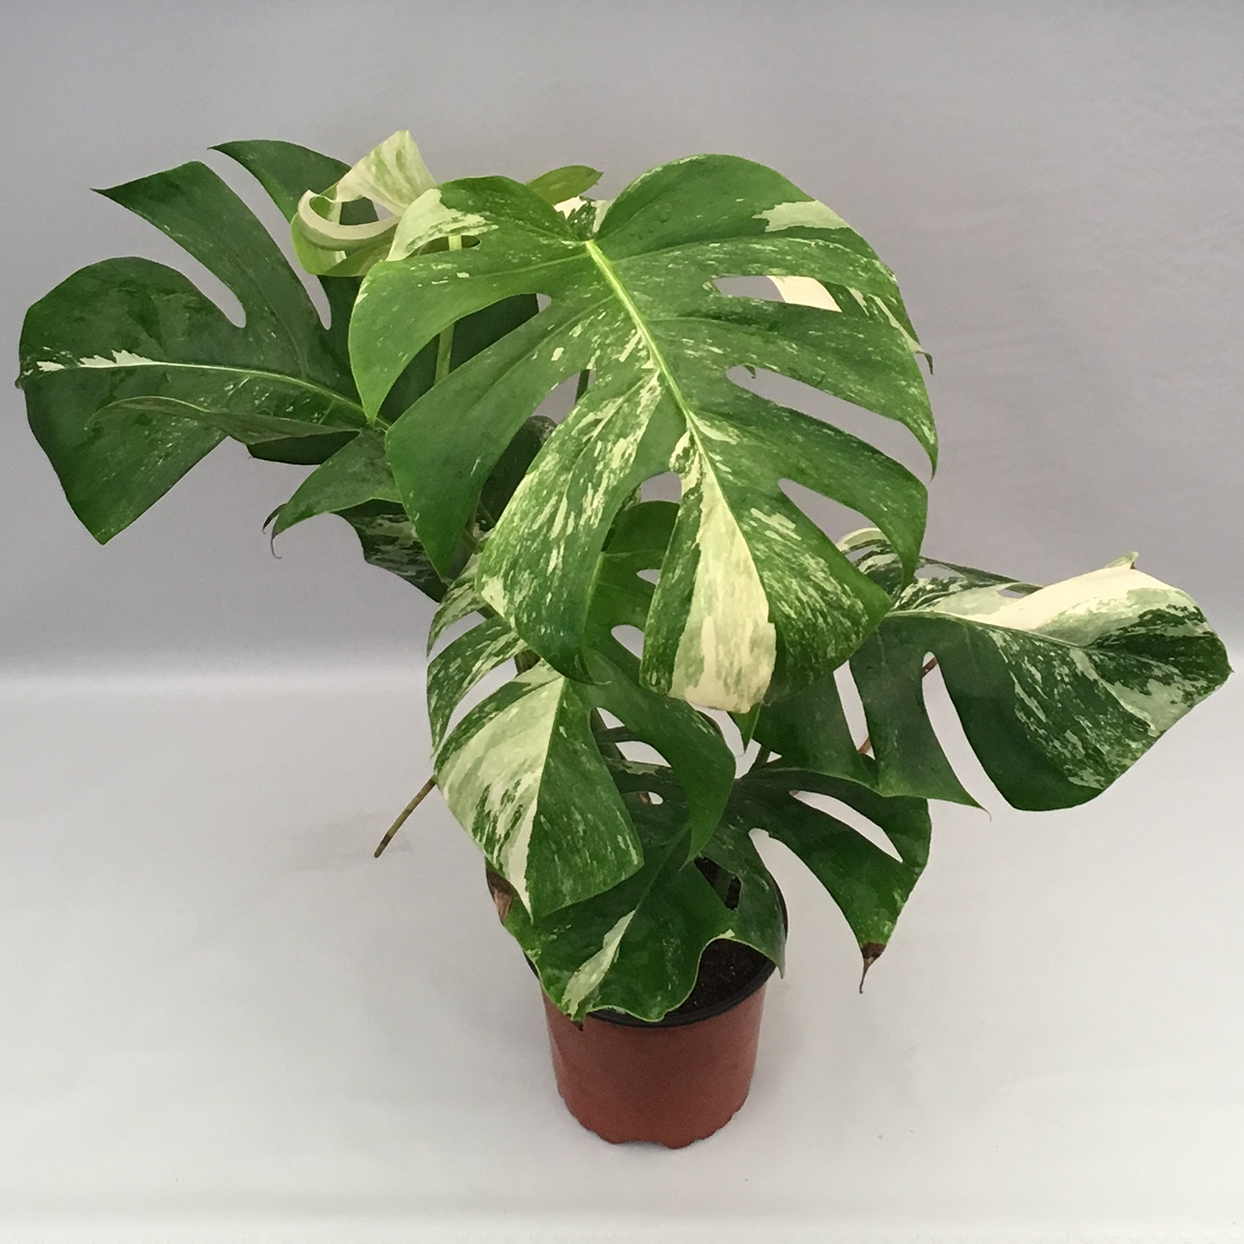 Variegated Monstera deliciosa with white striped leaves in room